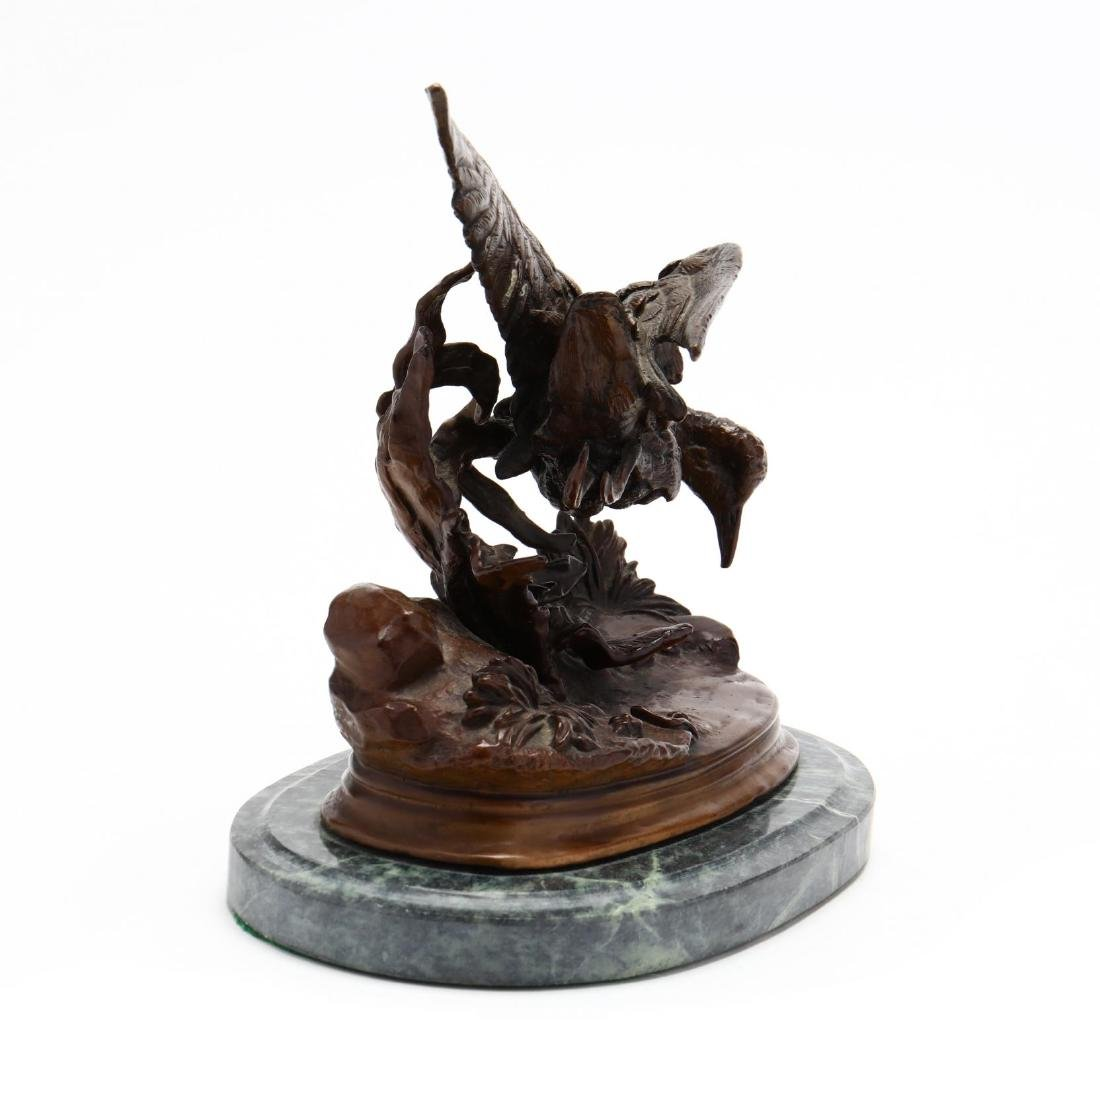 Bronze Sculpture of a Game Bird in Motion - 5